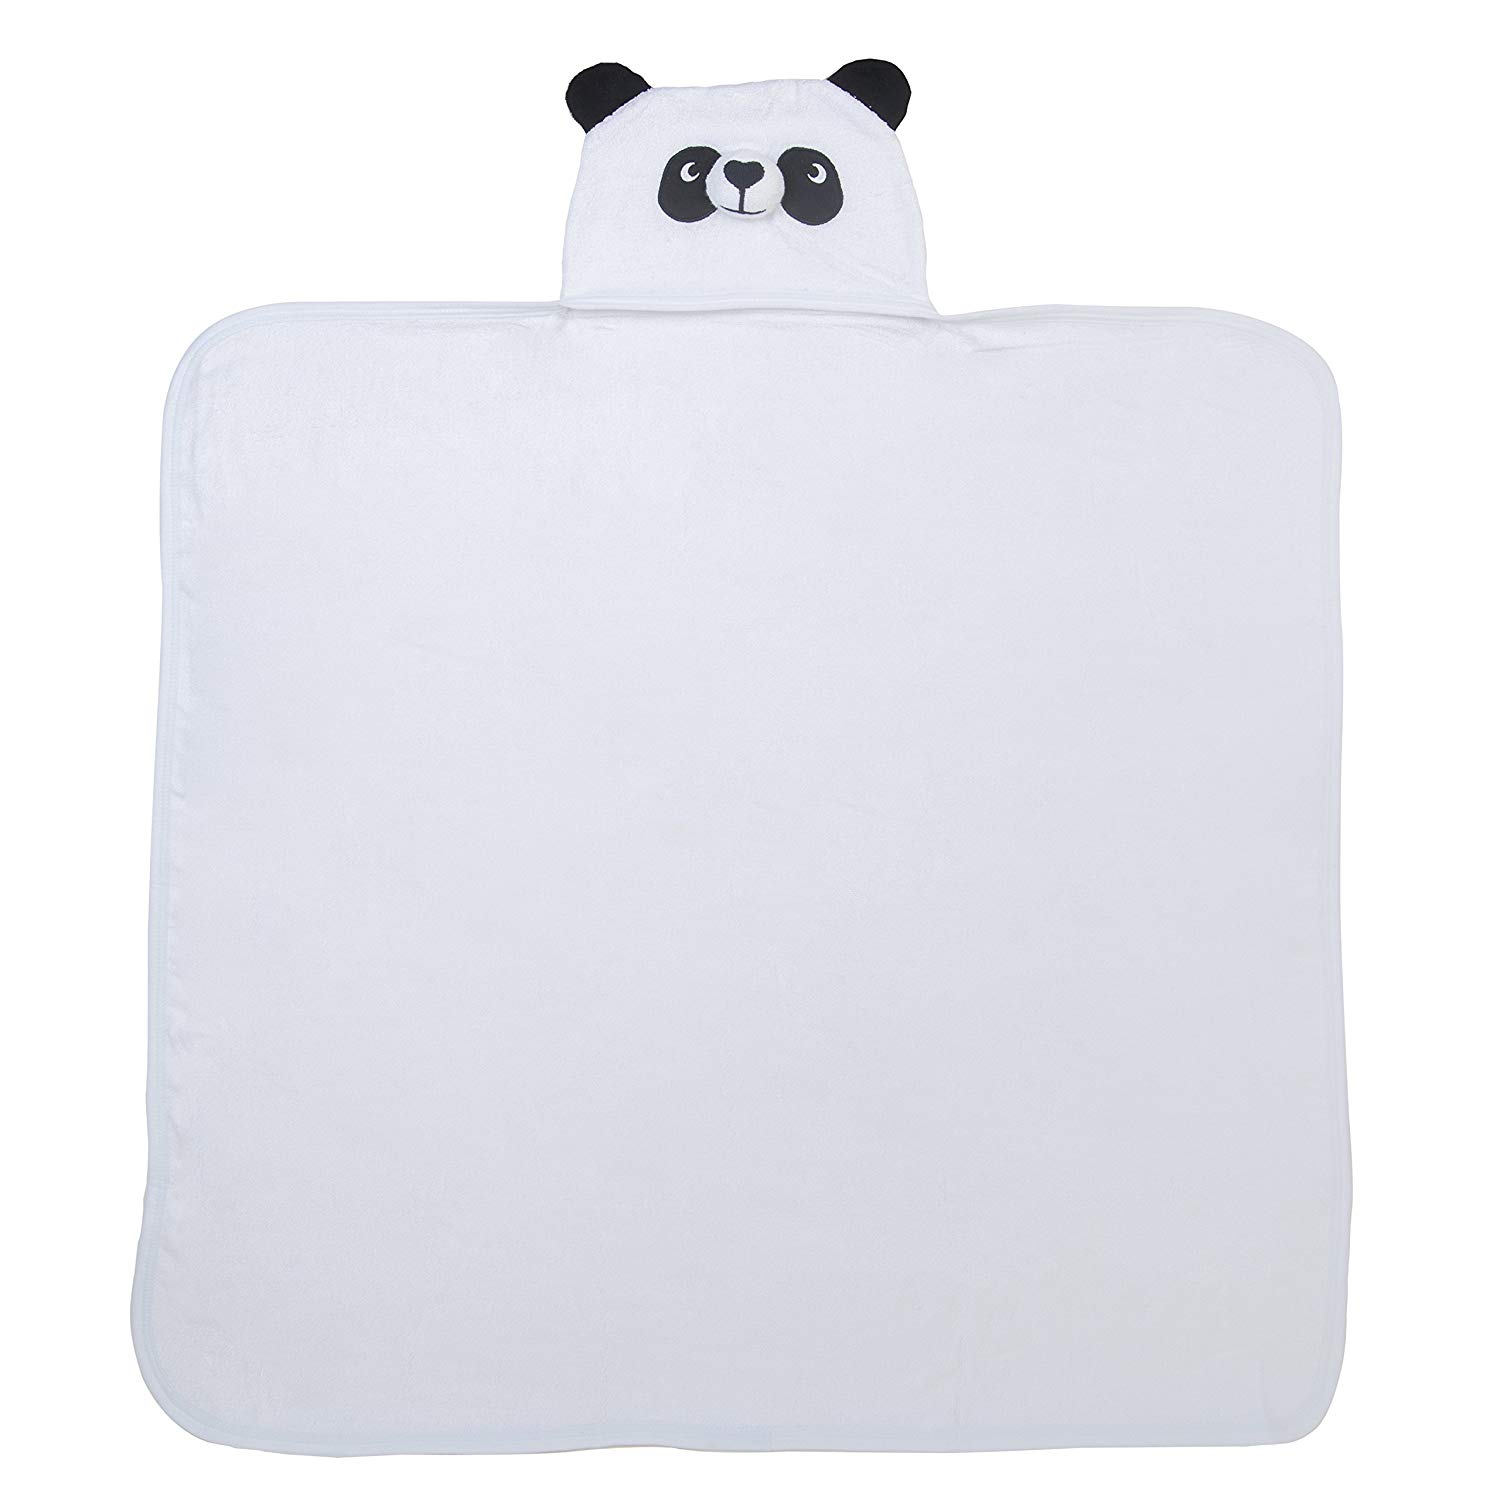 Bamboo Panda Hooded Baby Towel 100 Organic Unisex Towel Highly Absorbent And Super Soft Bath Towel For The Pool An B071G2C4Z9 6